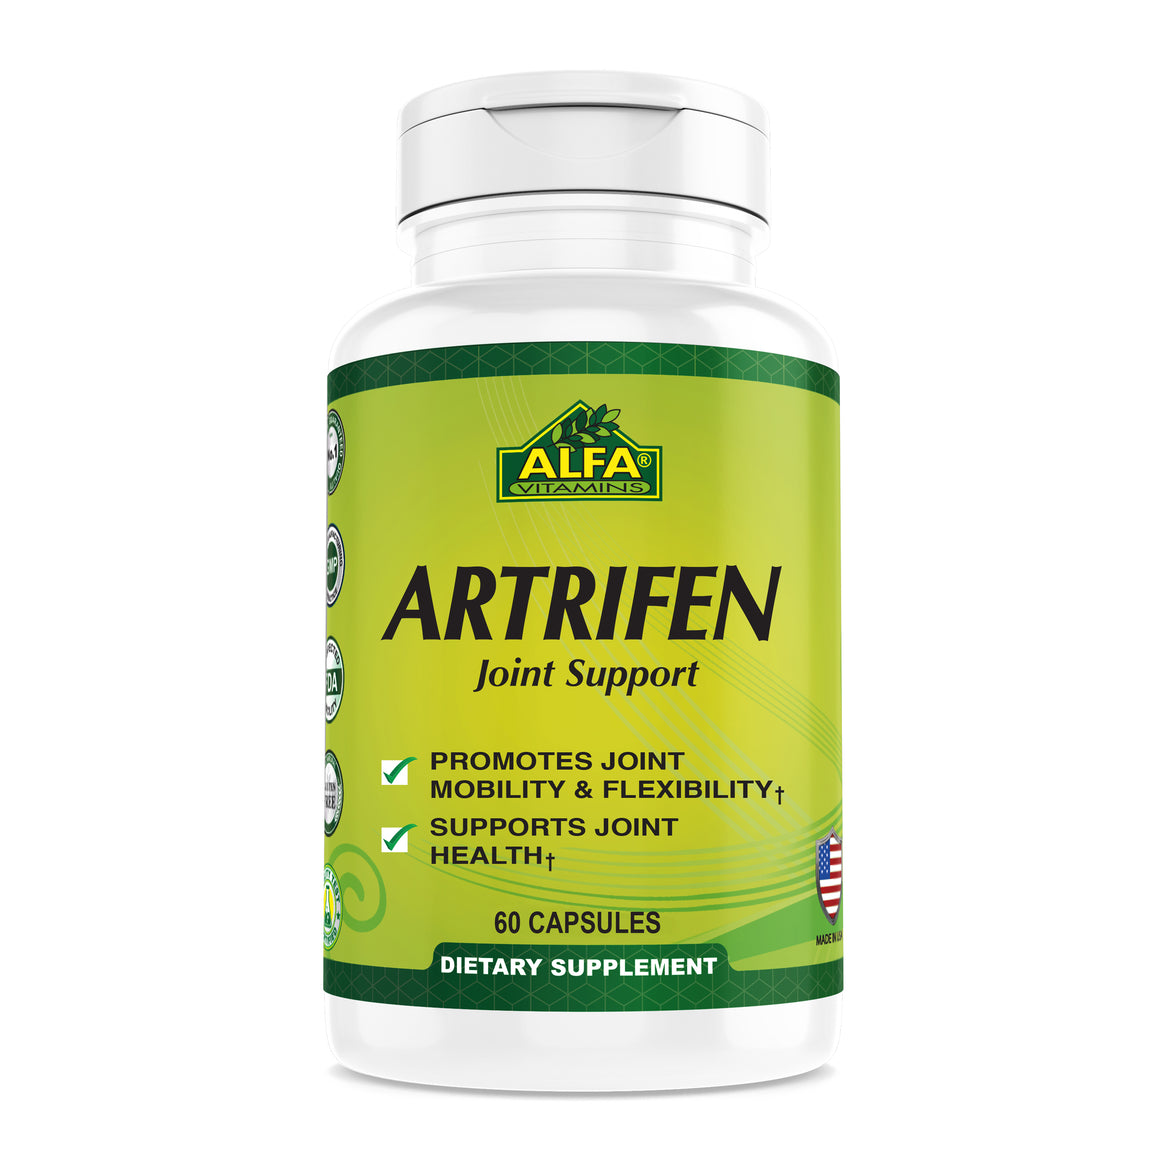 Artrifen - Joint Support Formula - 60 capsules